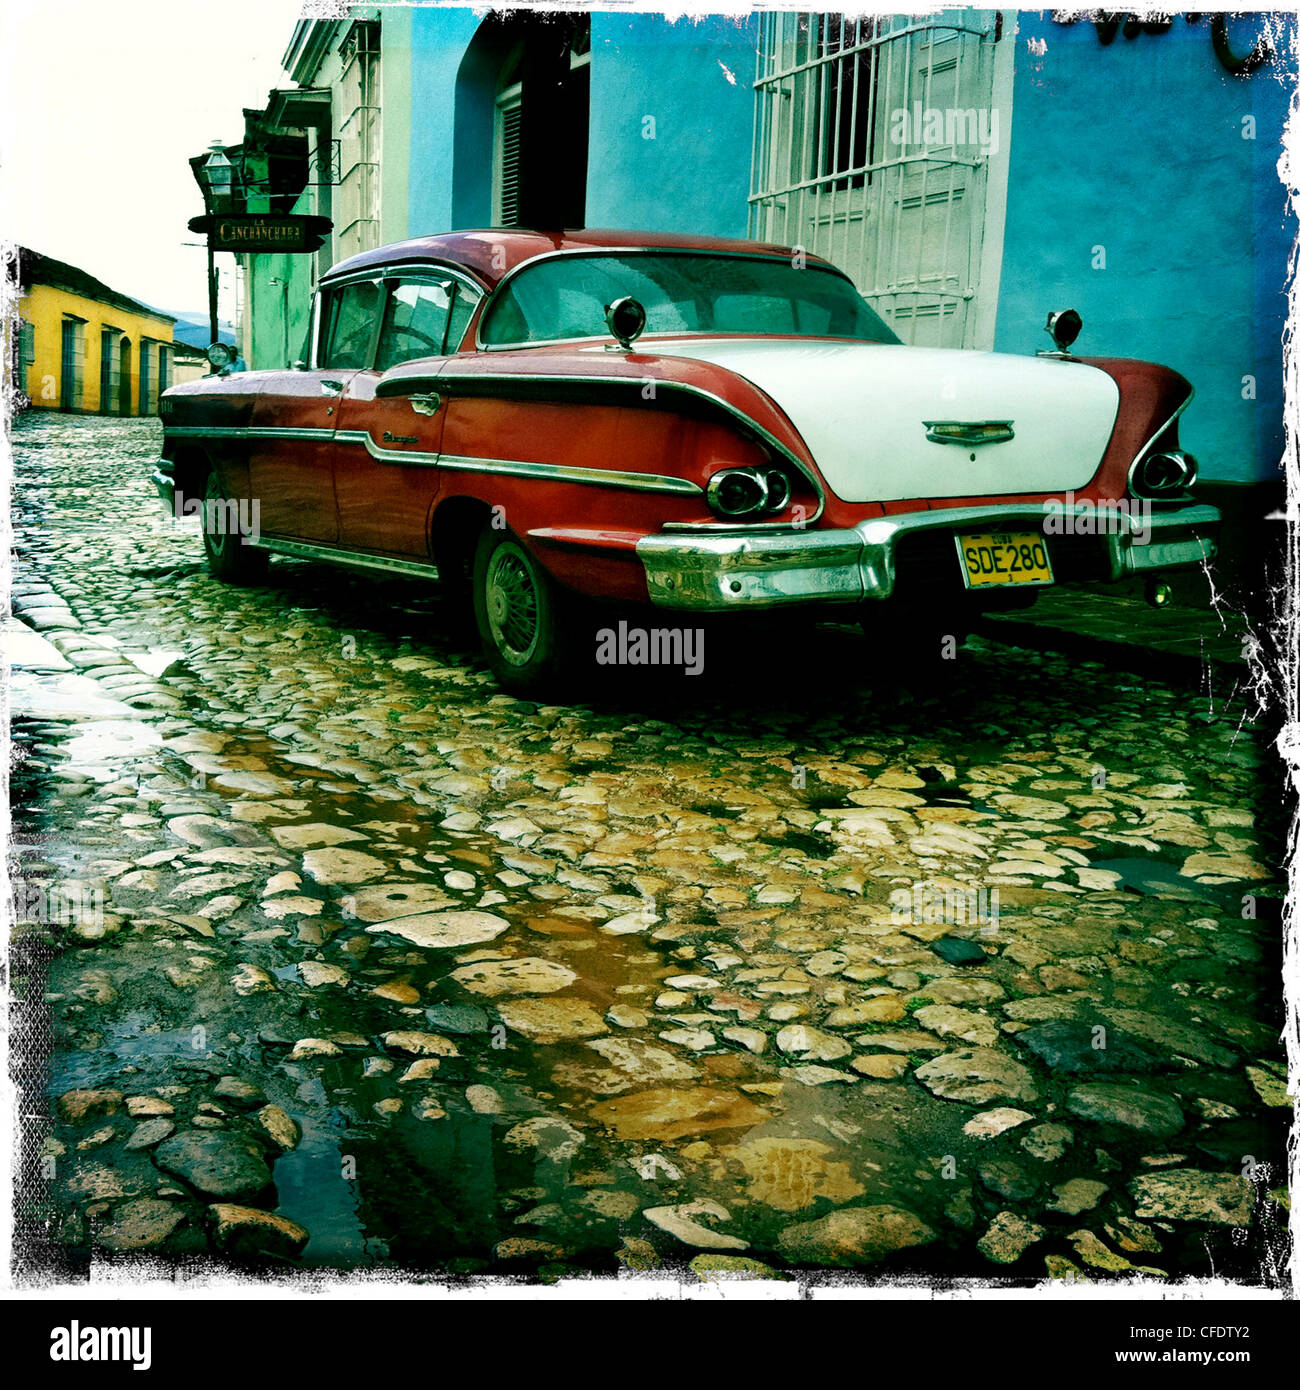 Old American car parked on a cobbled street in the town of Trinidad, Cuba, West Indies, Central America - Stock Image